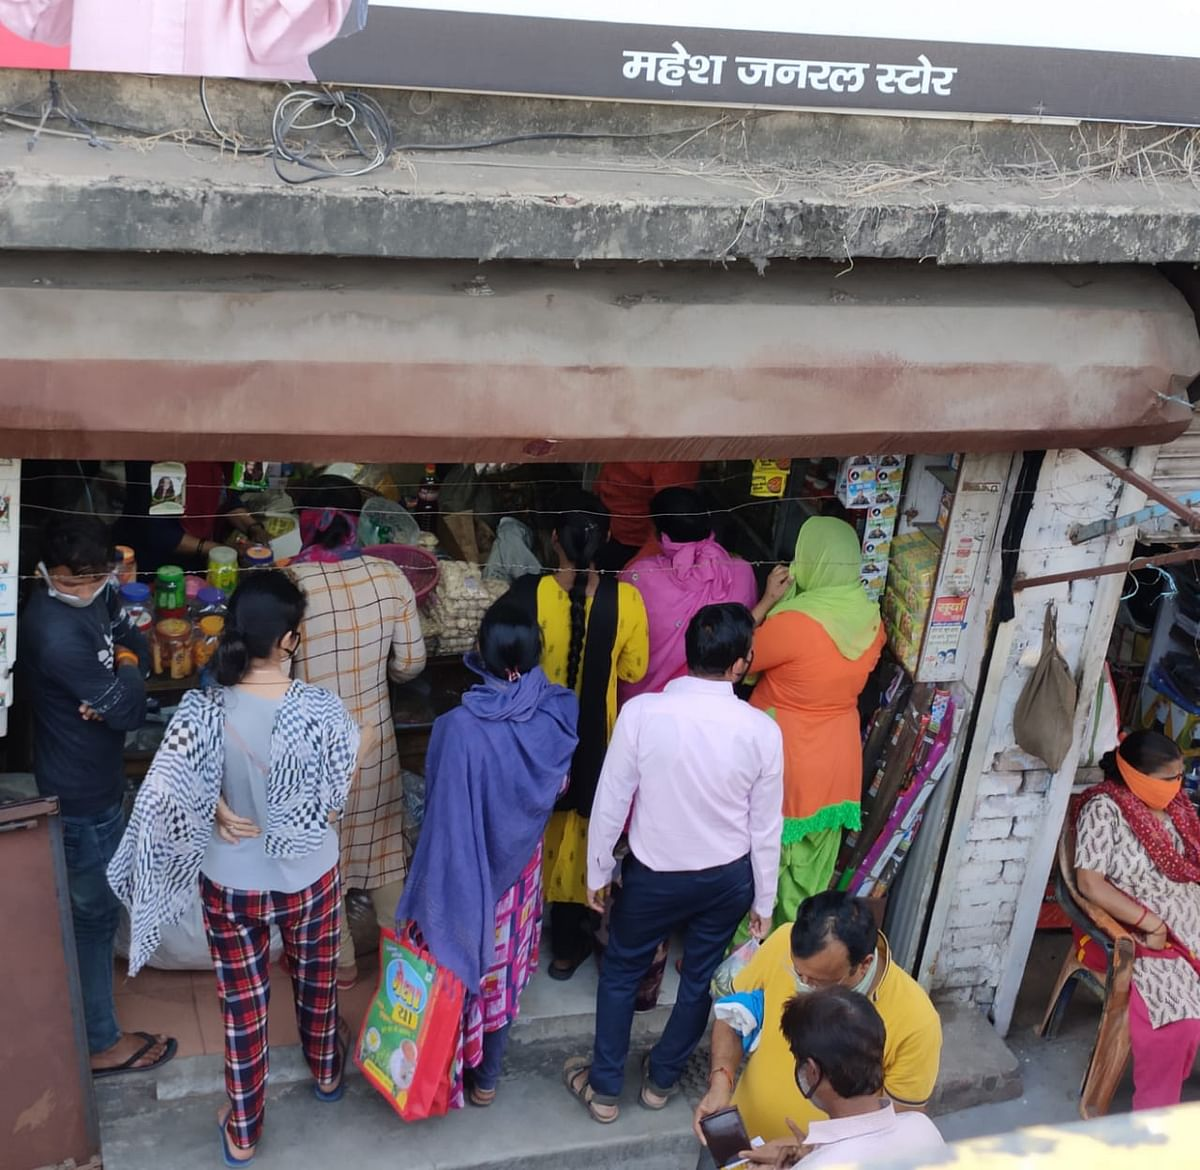 People queue outside a shop in Lucknow's Nishatganj area soon after news reports of hotspots being sealed.